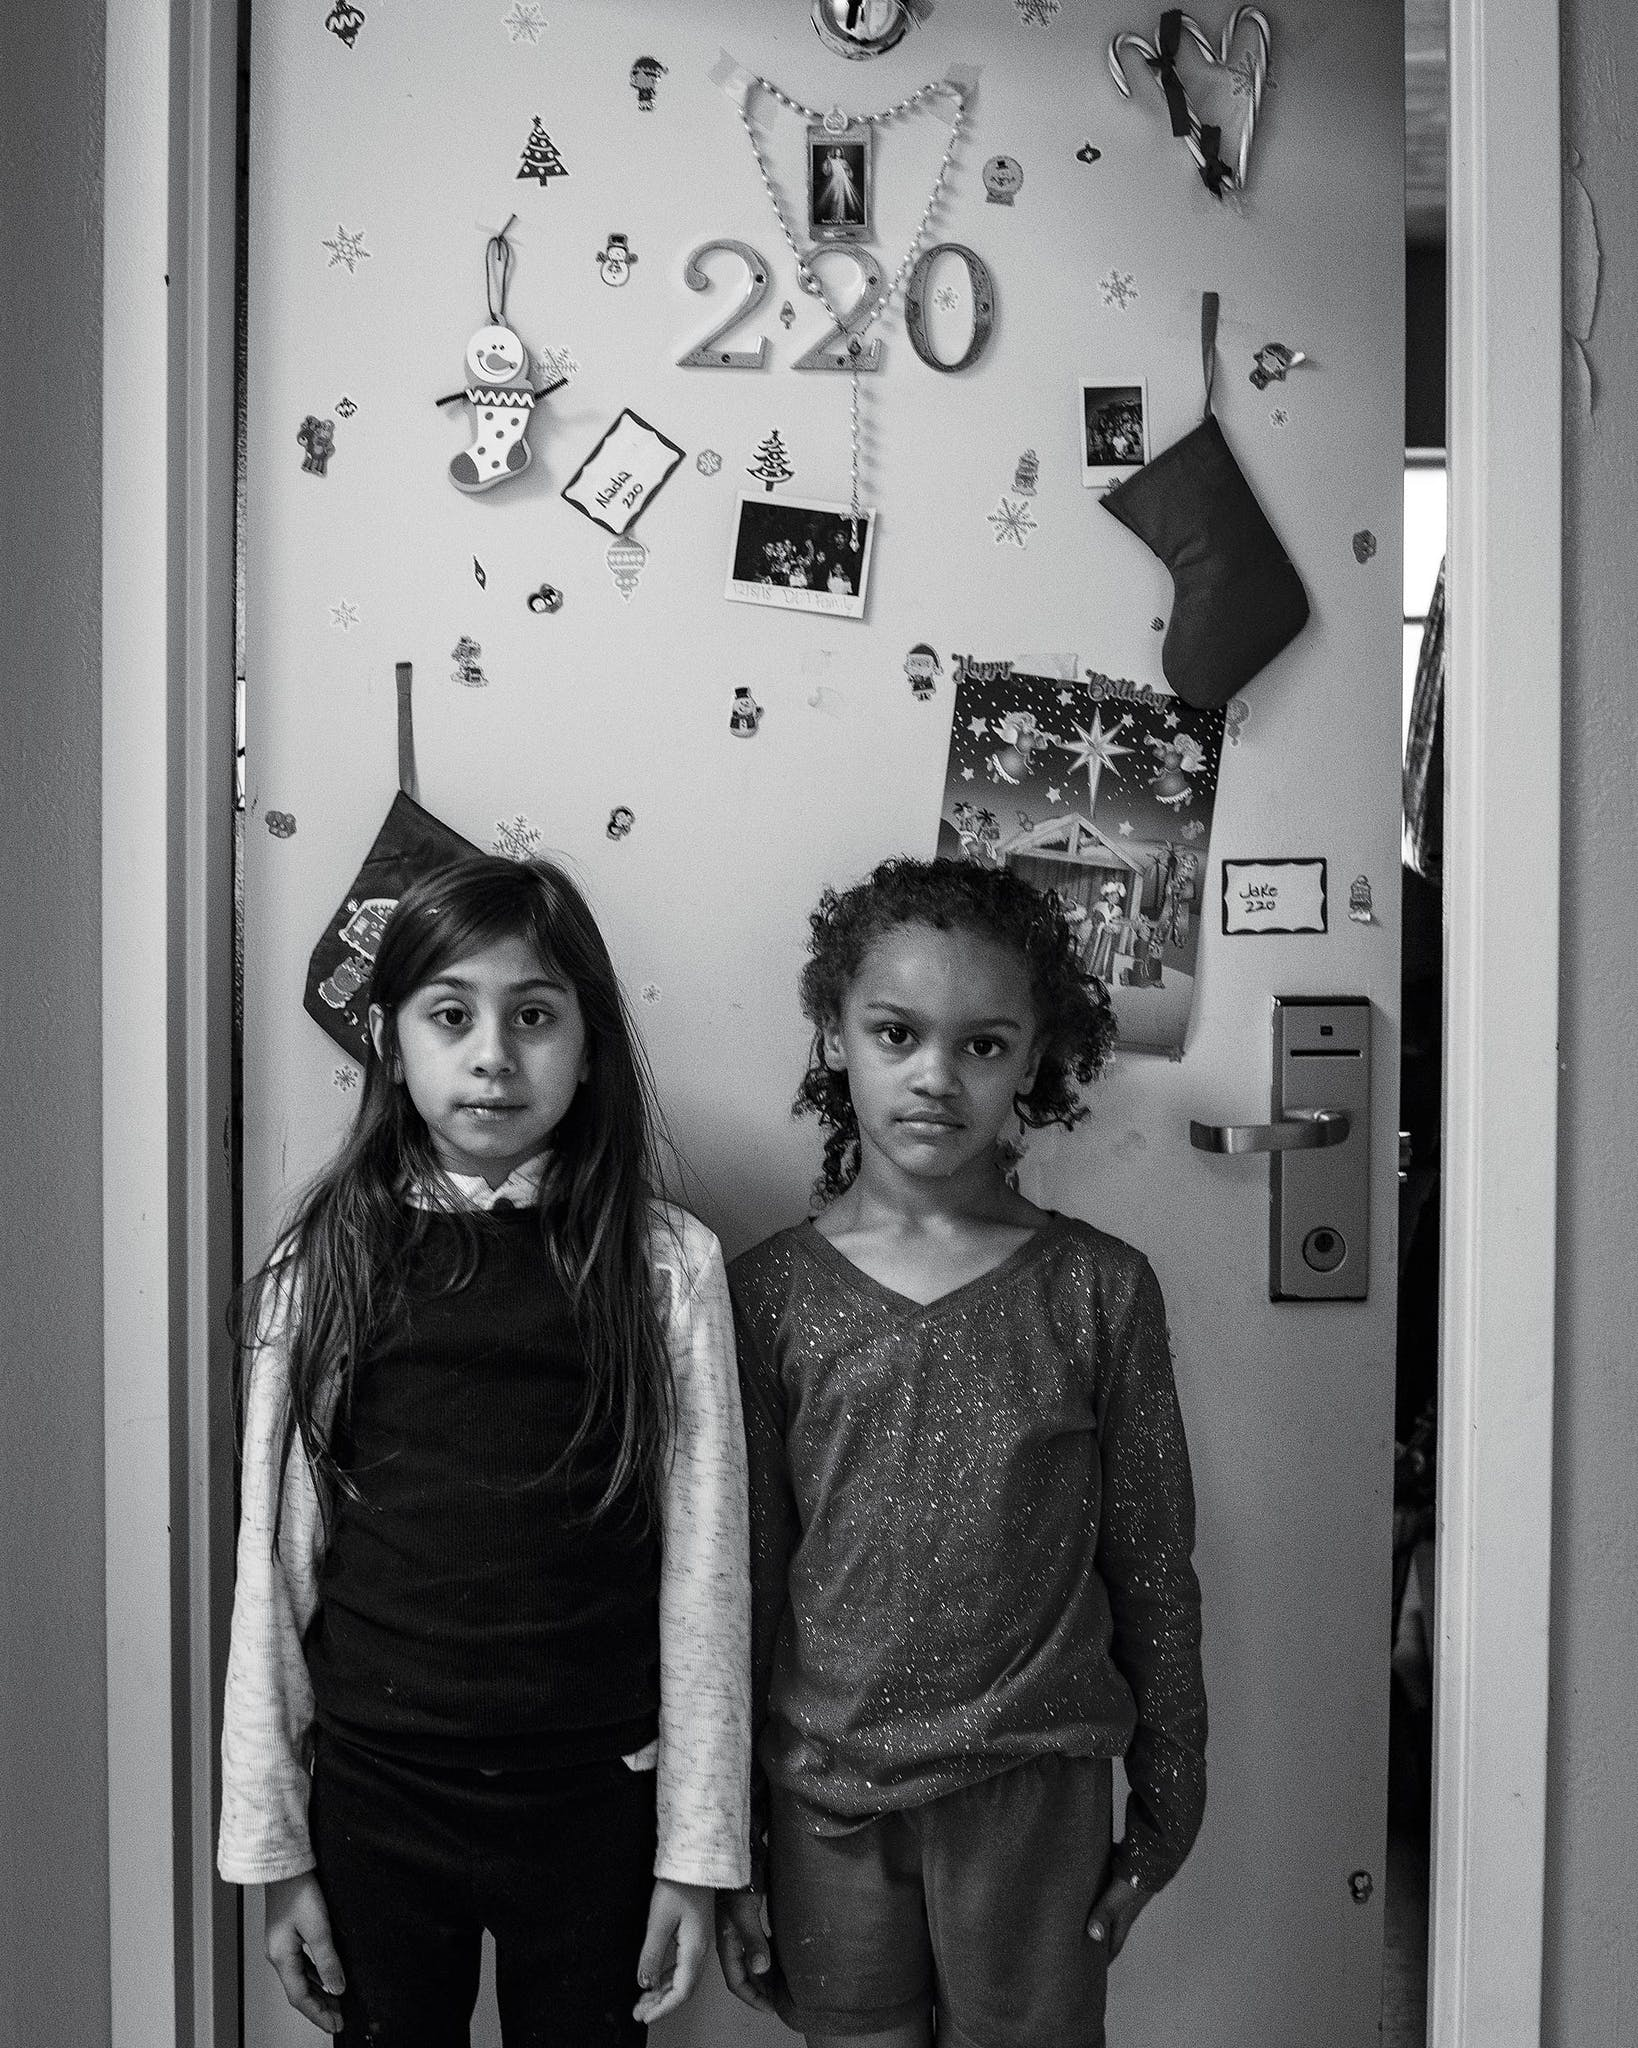 Nadia De La Torre, 9, stands outside her family's room with her friend Skye Griffin, 8, who lives next door.